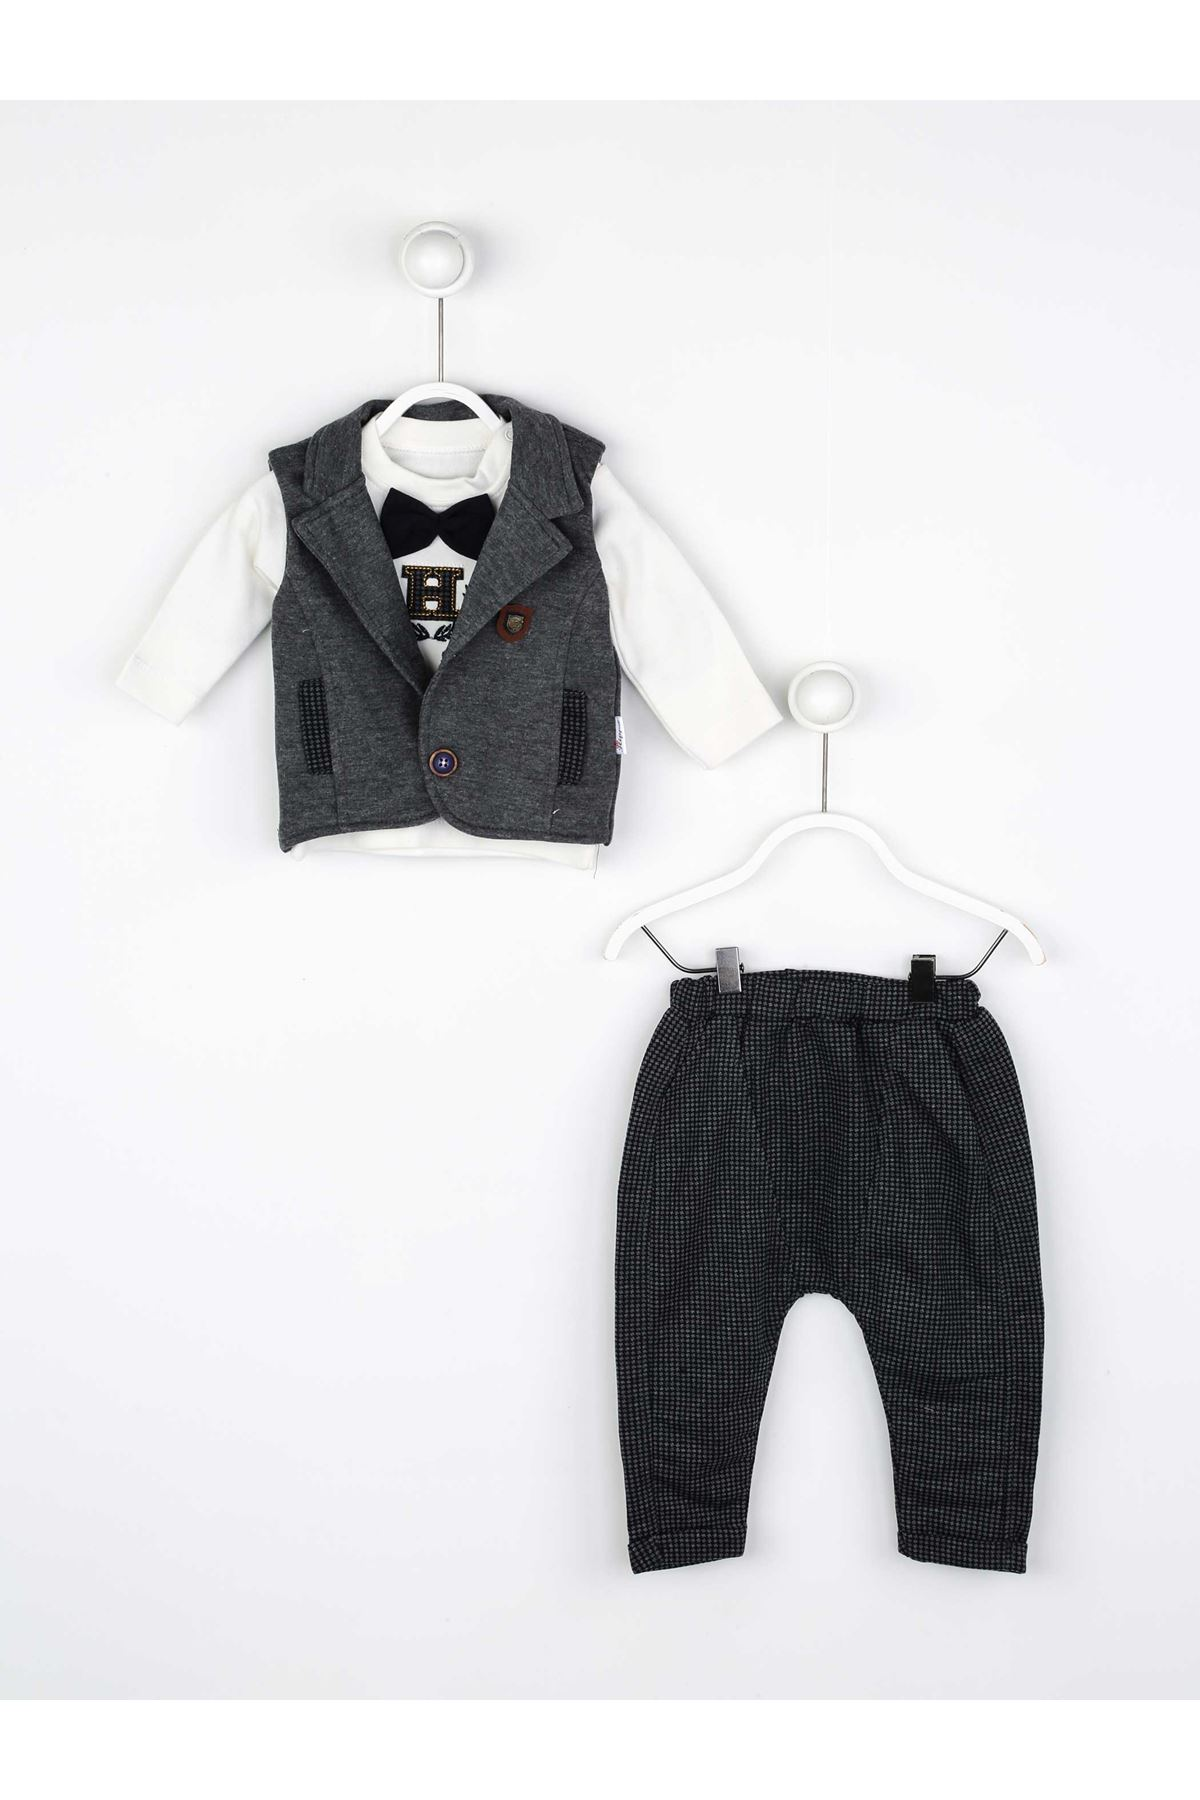 Gray Seasonal Papyonlu Male Baby 3 PCs Set